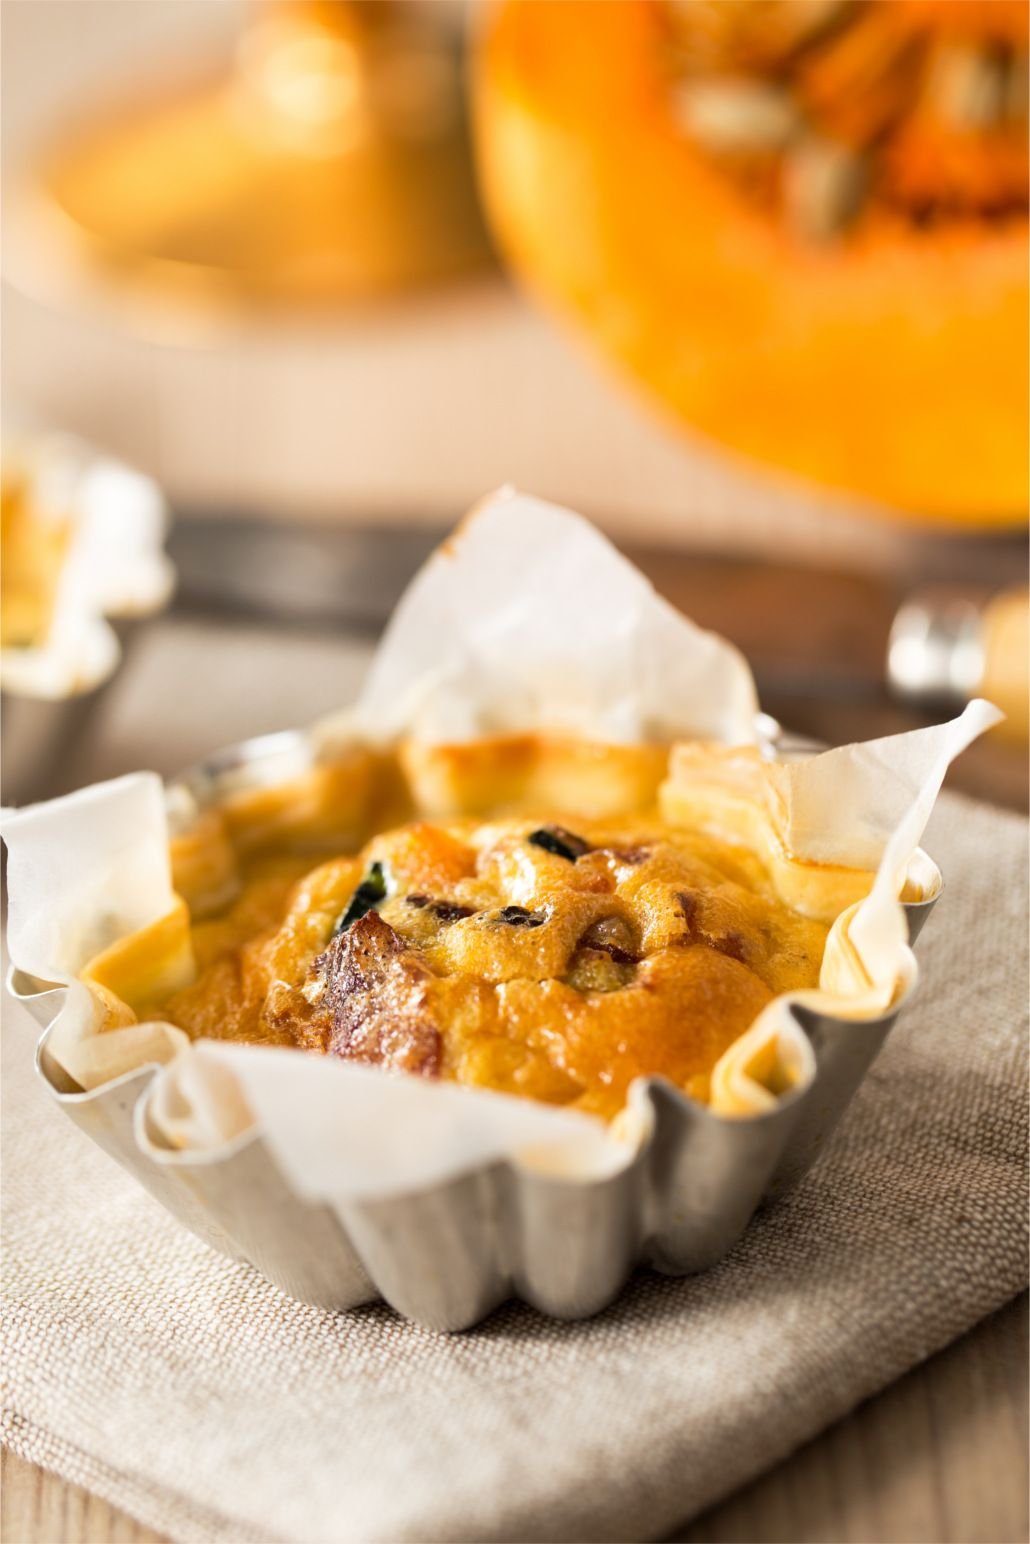 Savory Pumpkin And Goat Cheese Tart